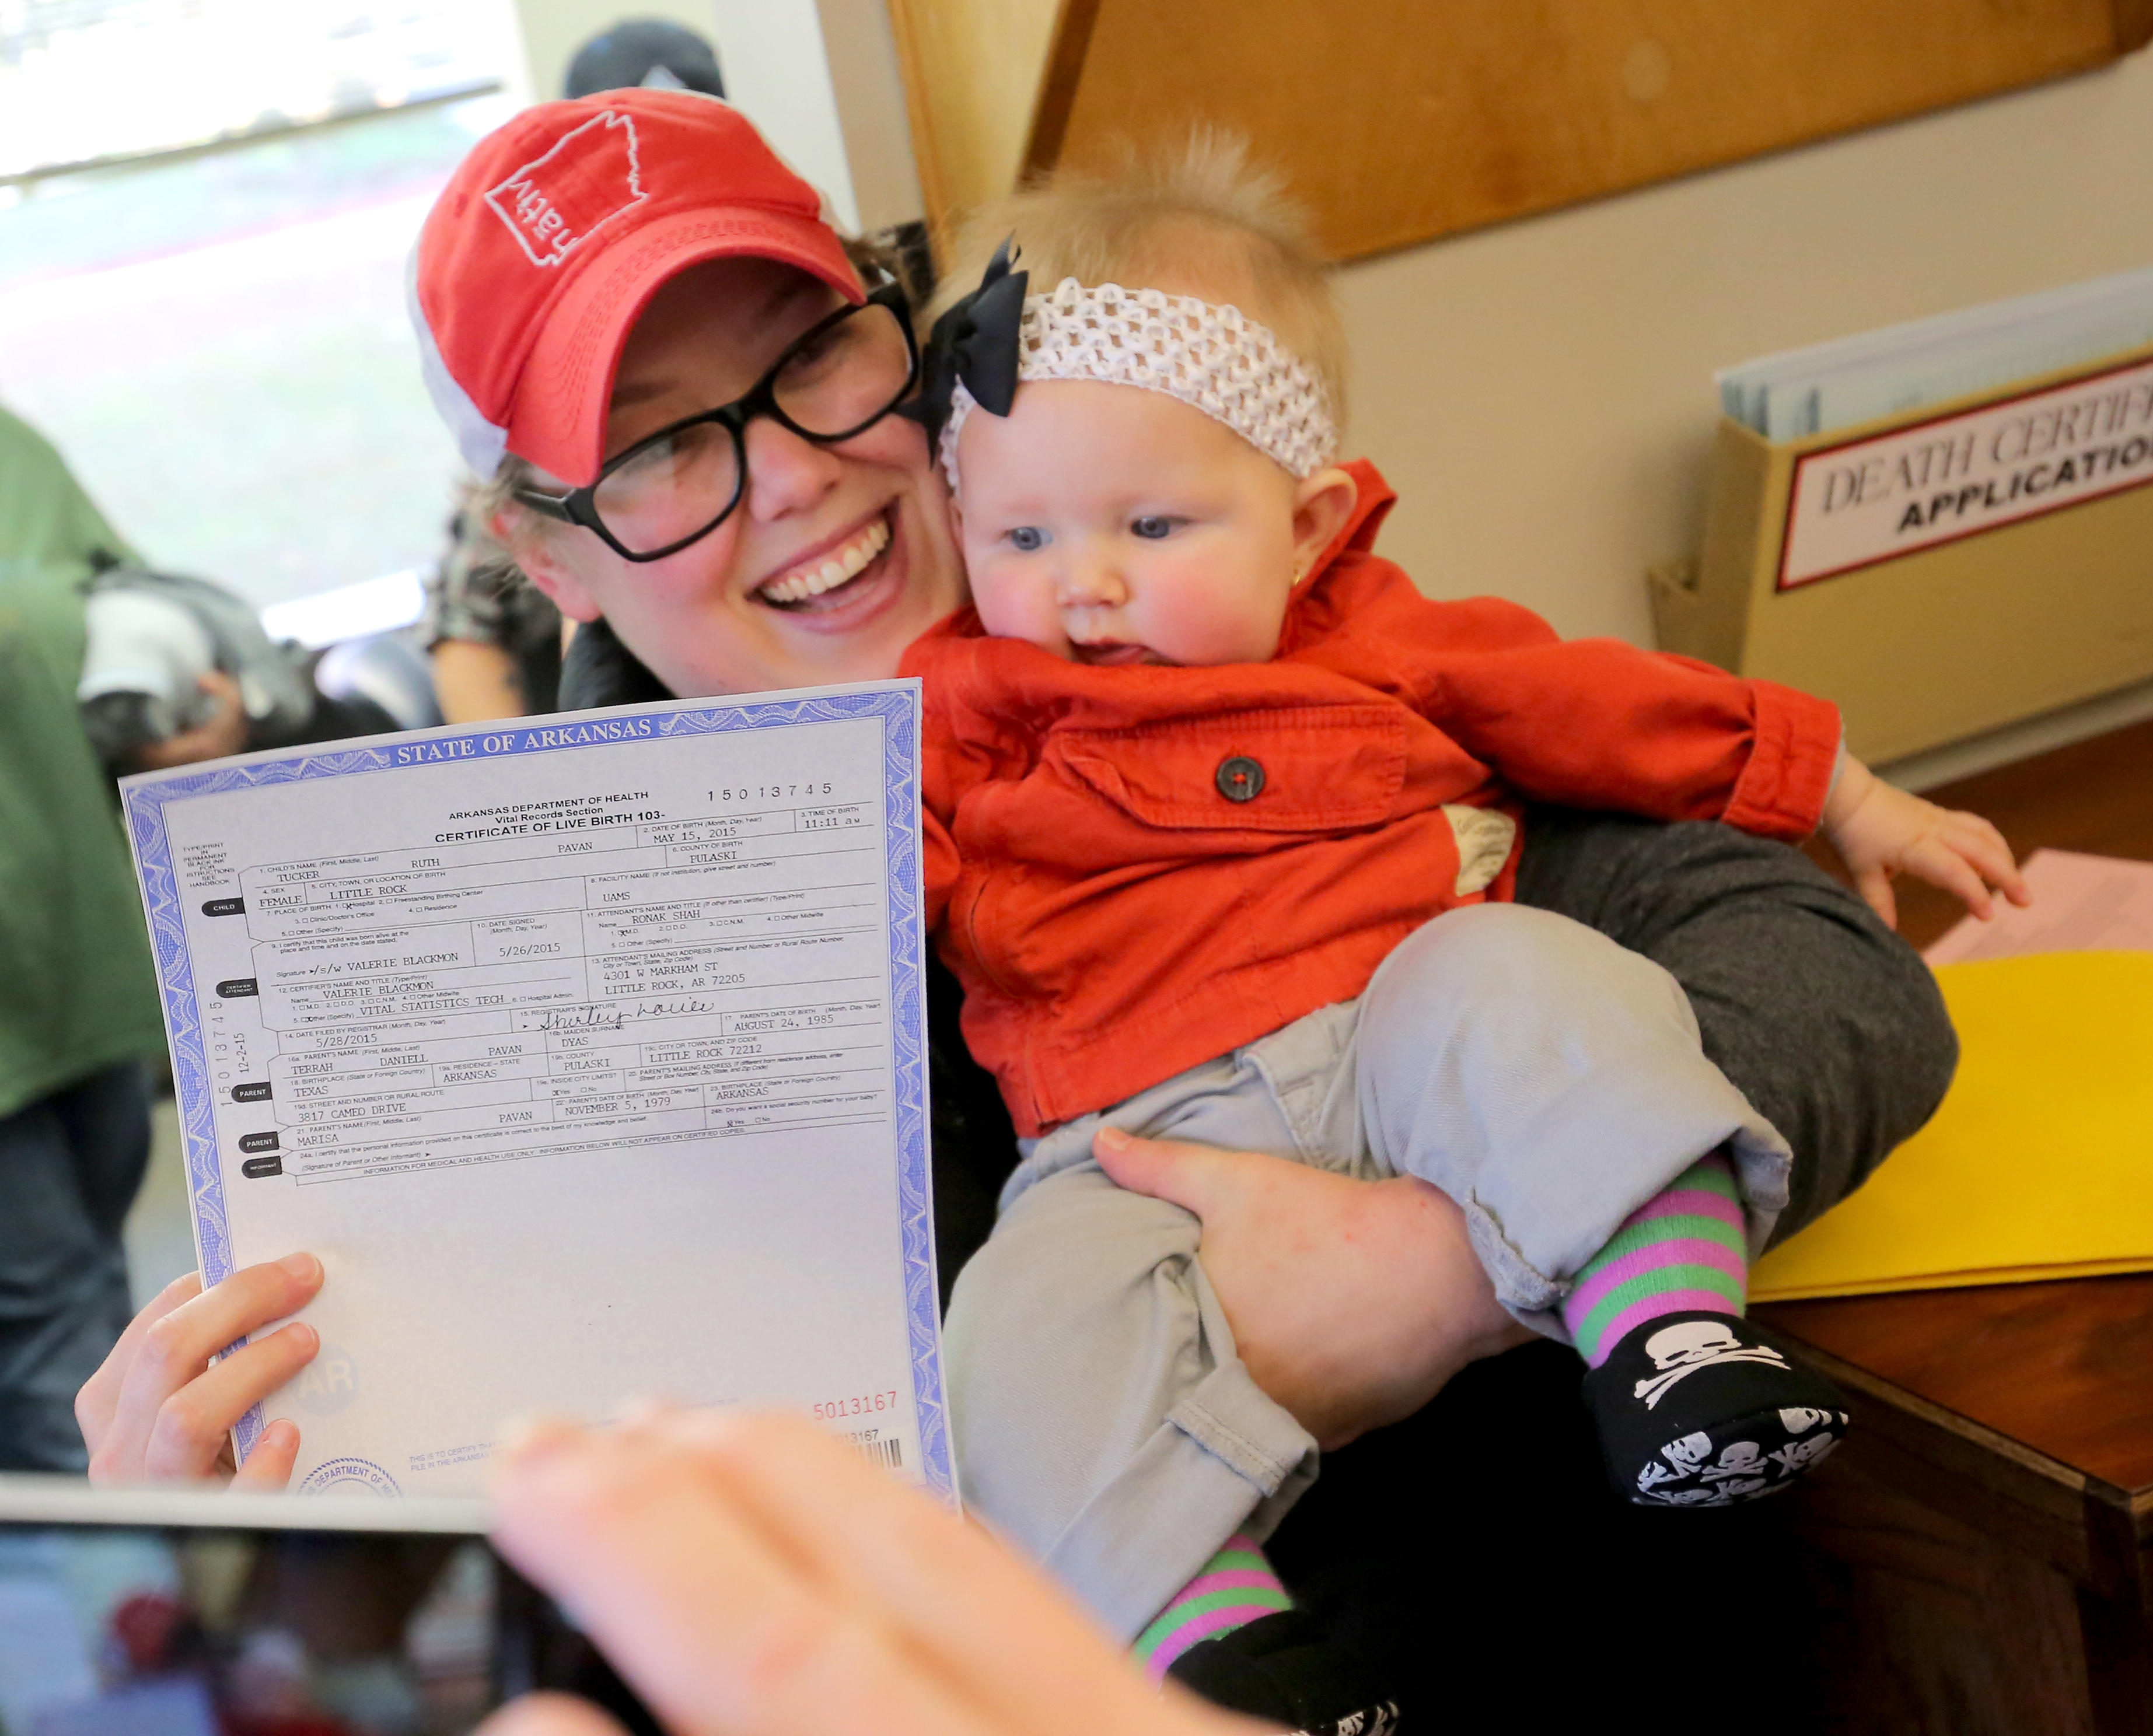 Arkansas issues amended birth certificate to same-sex couple